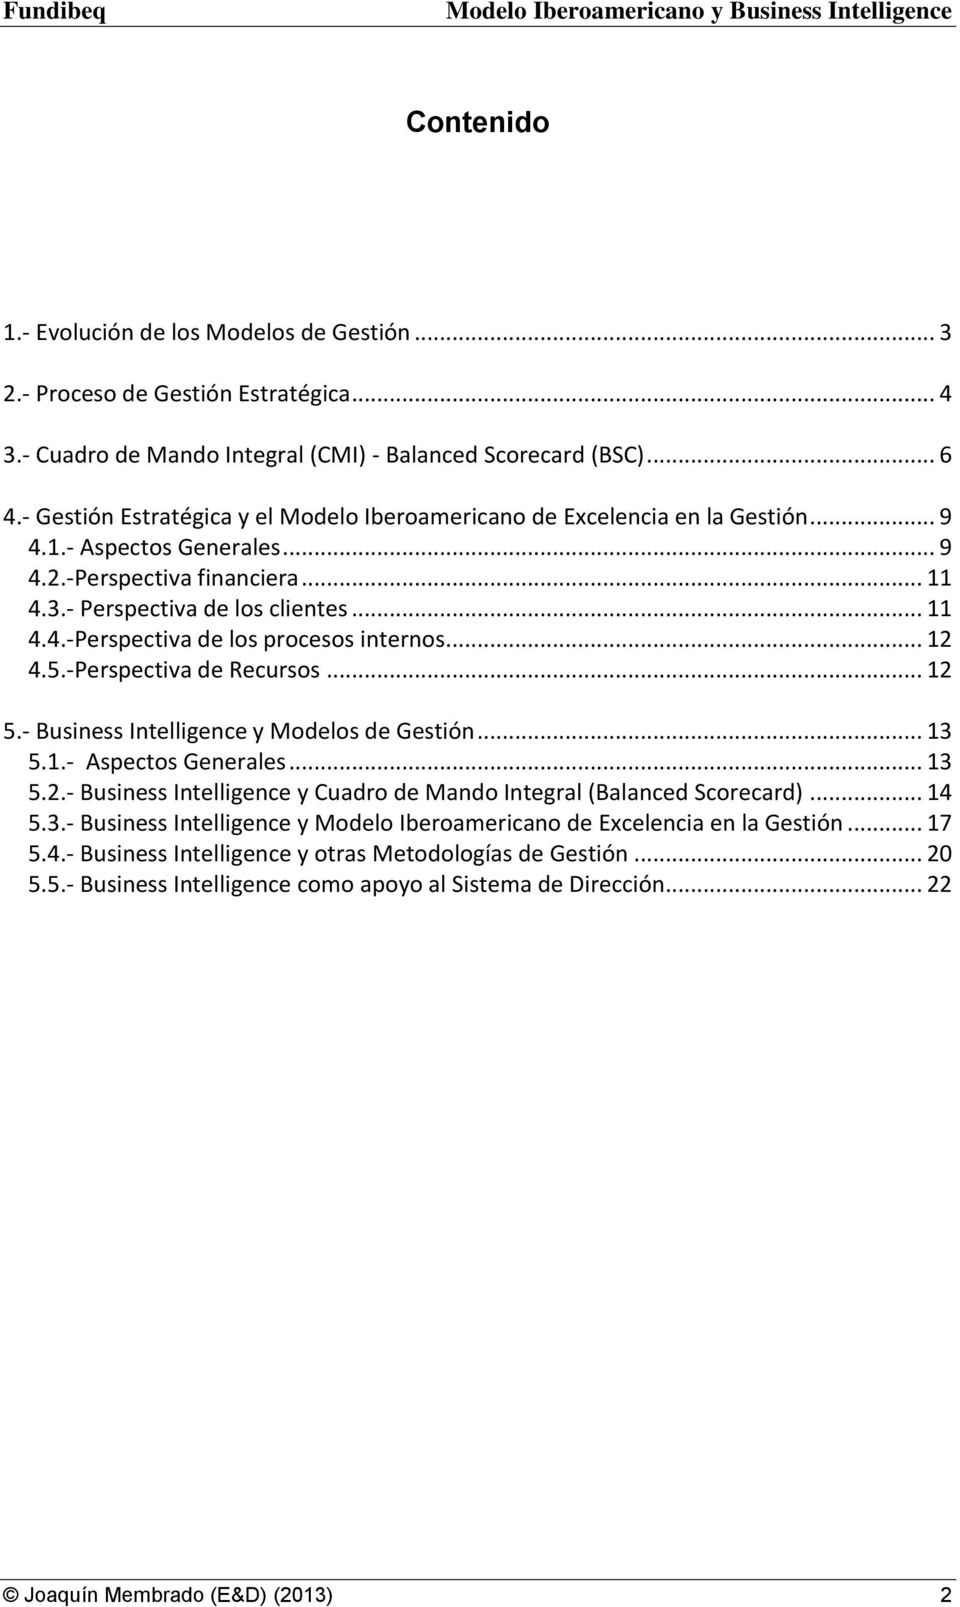 .. 12 4.5.-Perspectiva de Recursos... 12 5.- Business Intelligence y Modelos de Gestión... 13 5.1.- Aspectos Generales... 13 5.2.- Business Intelligence y Cuadro de Mando Integral (Balanced Scorecard).